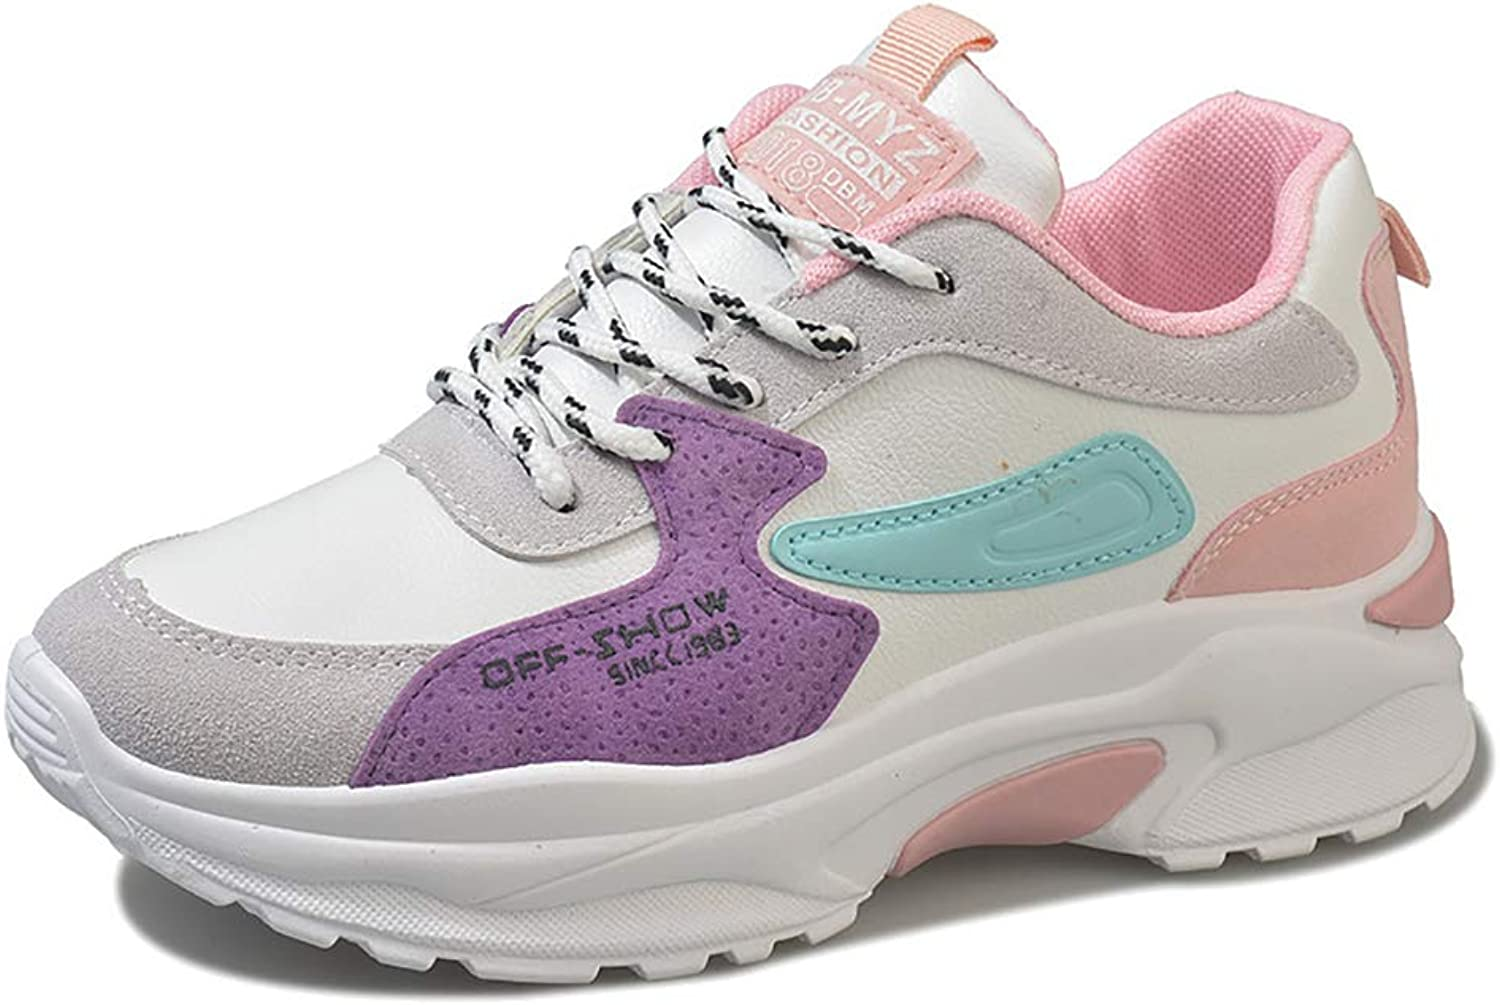 Womens Ladies Trainers Running Fitness Air Sneakers Athletic Lace up Sports shoes Black Pink Purple RedUK2.5-UK6(35-40),Purple,36